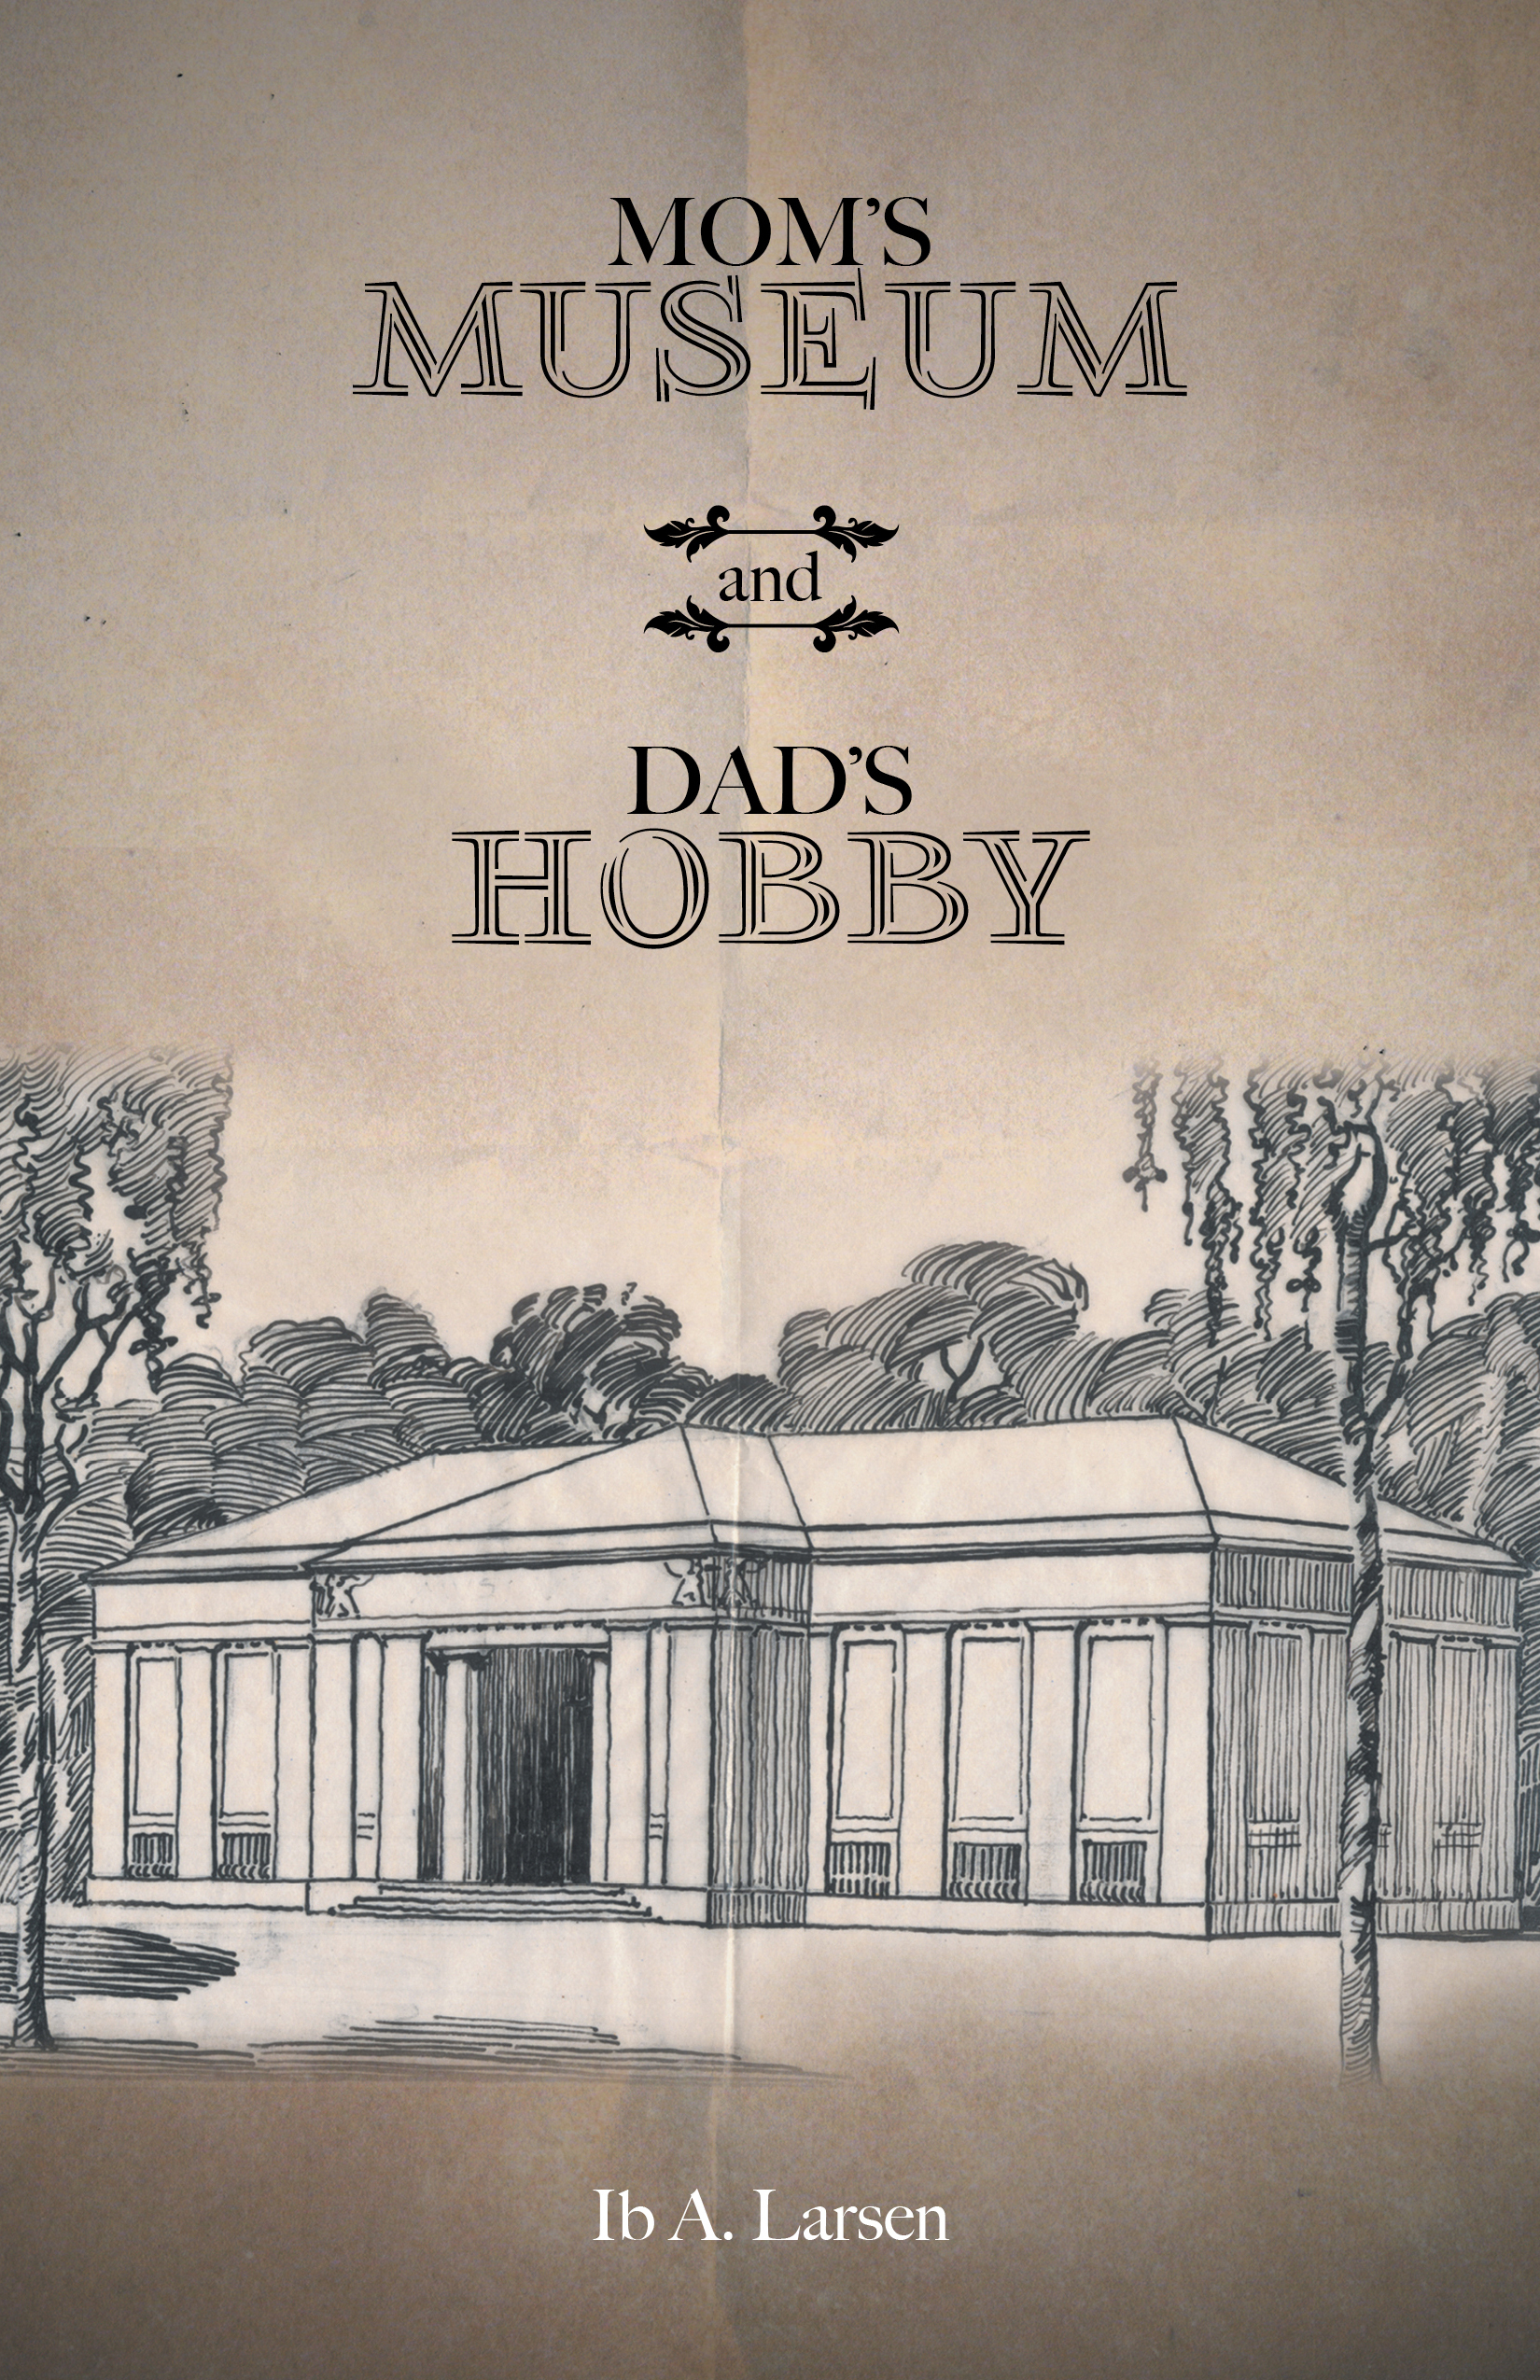 Moms Museum and Dads Hobby  by  Ib a Larsen